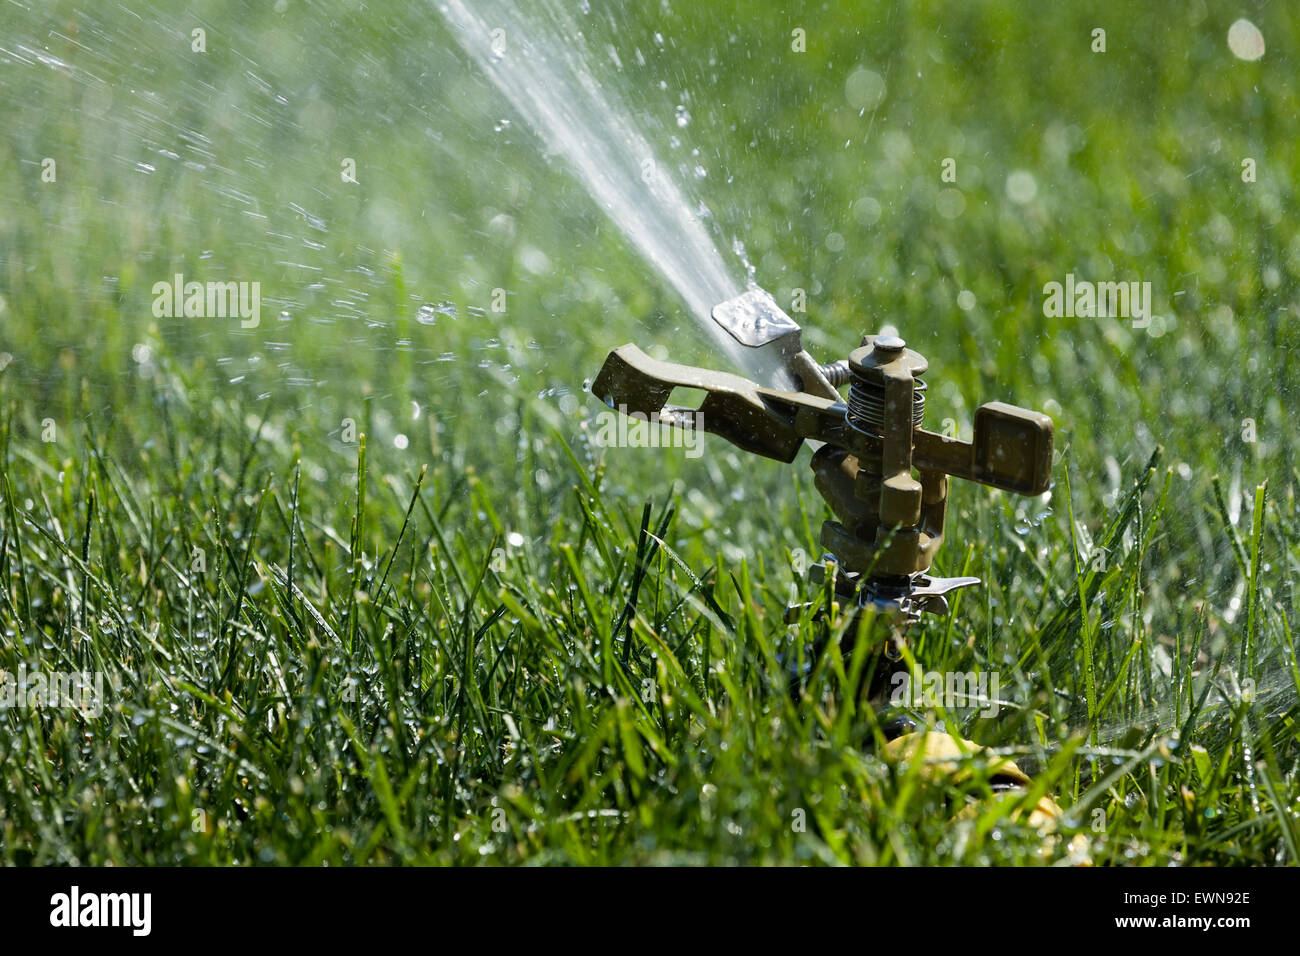 sprinkler grass automatic watering - Stock Image